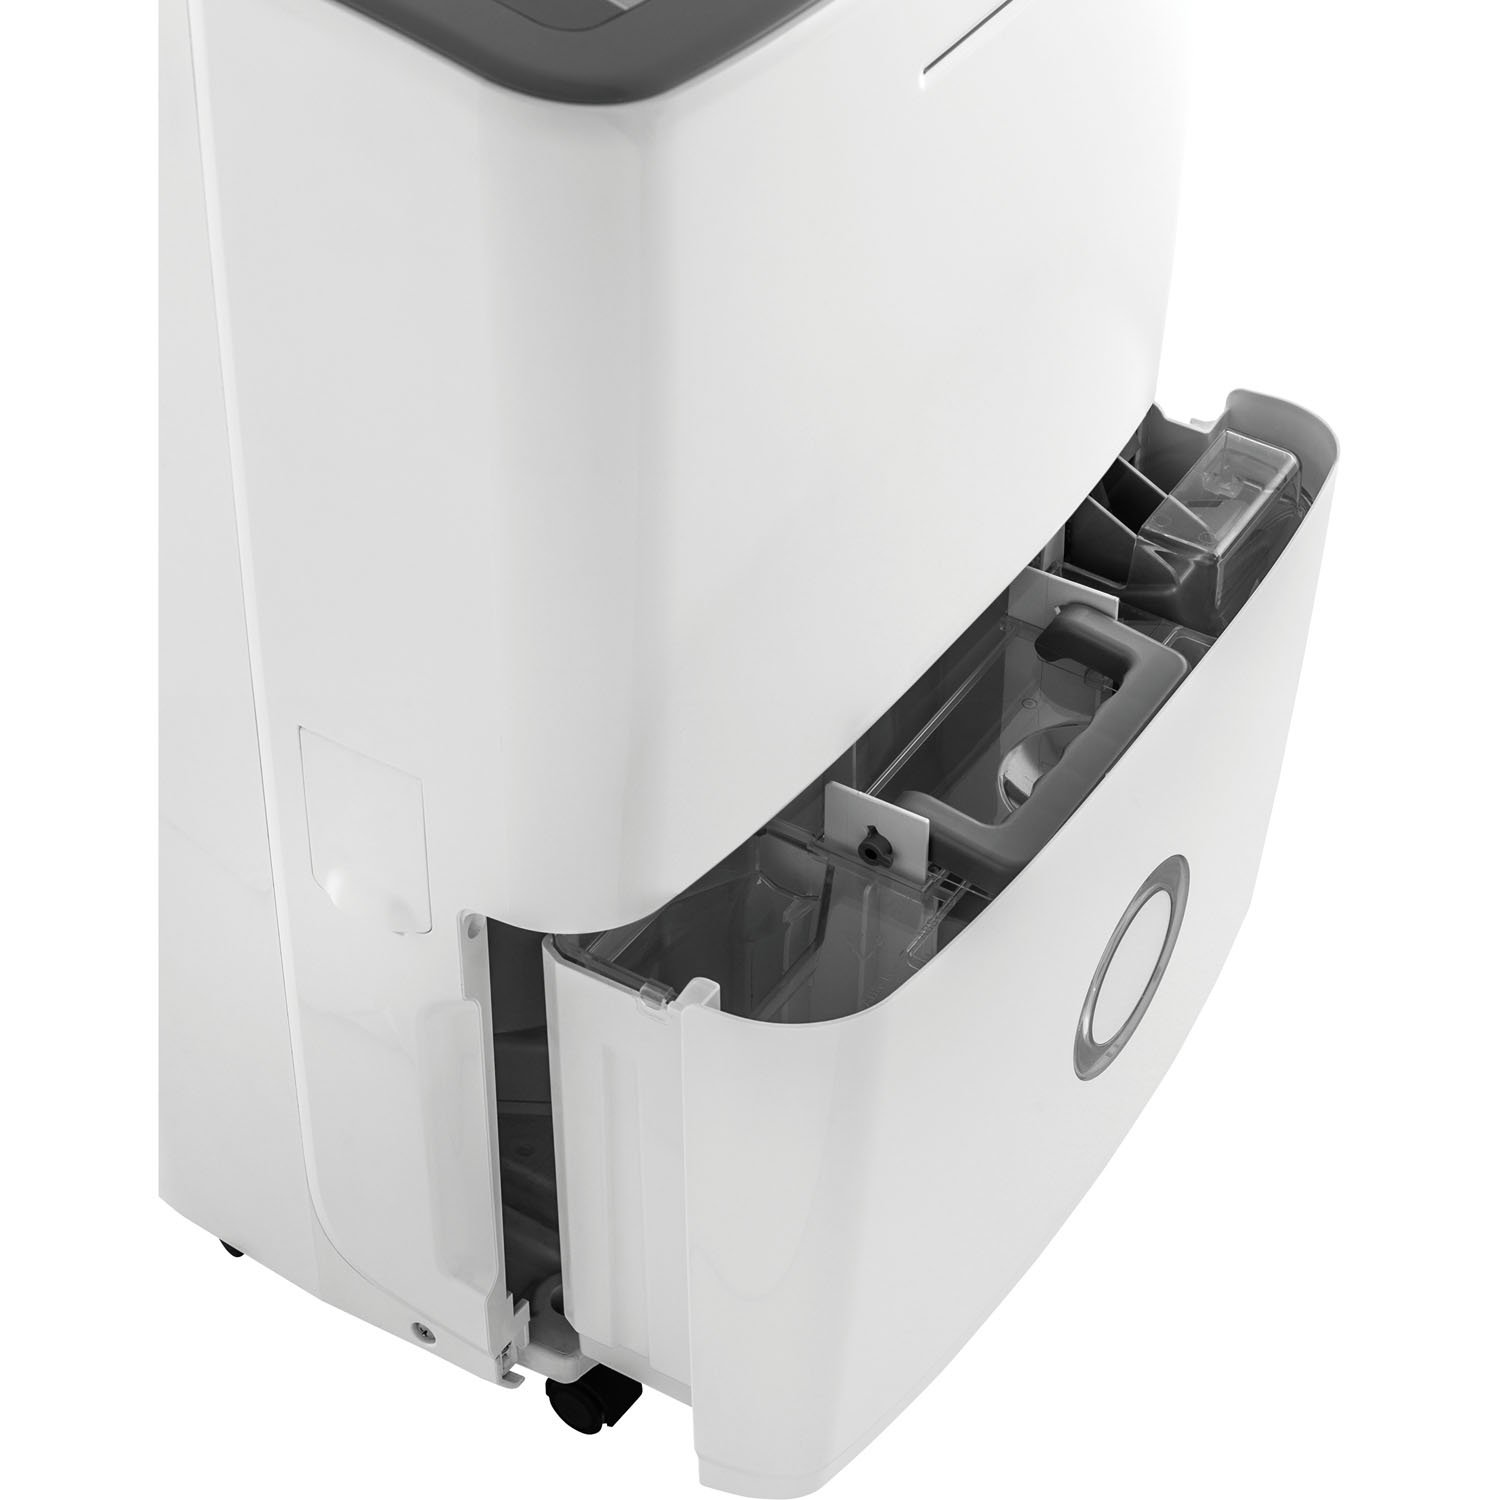 70-Pint Dehumidifier with Effortless Humidity Control, White by Frigidaire (Image #3)